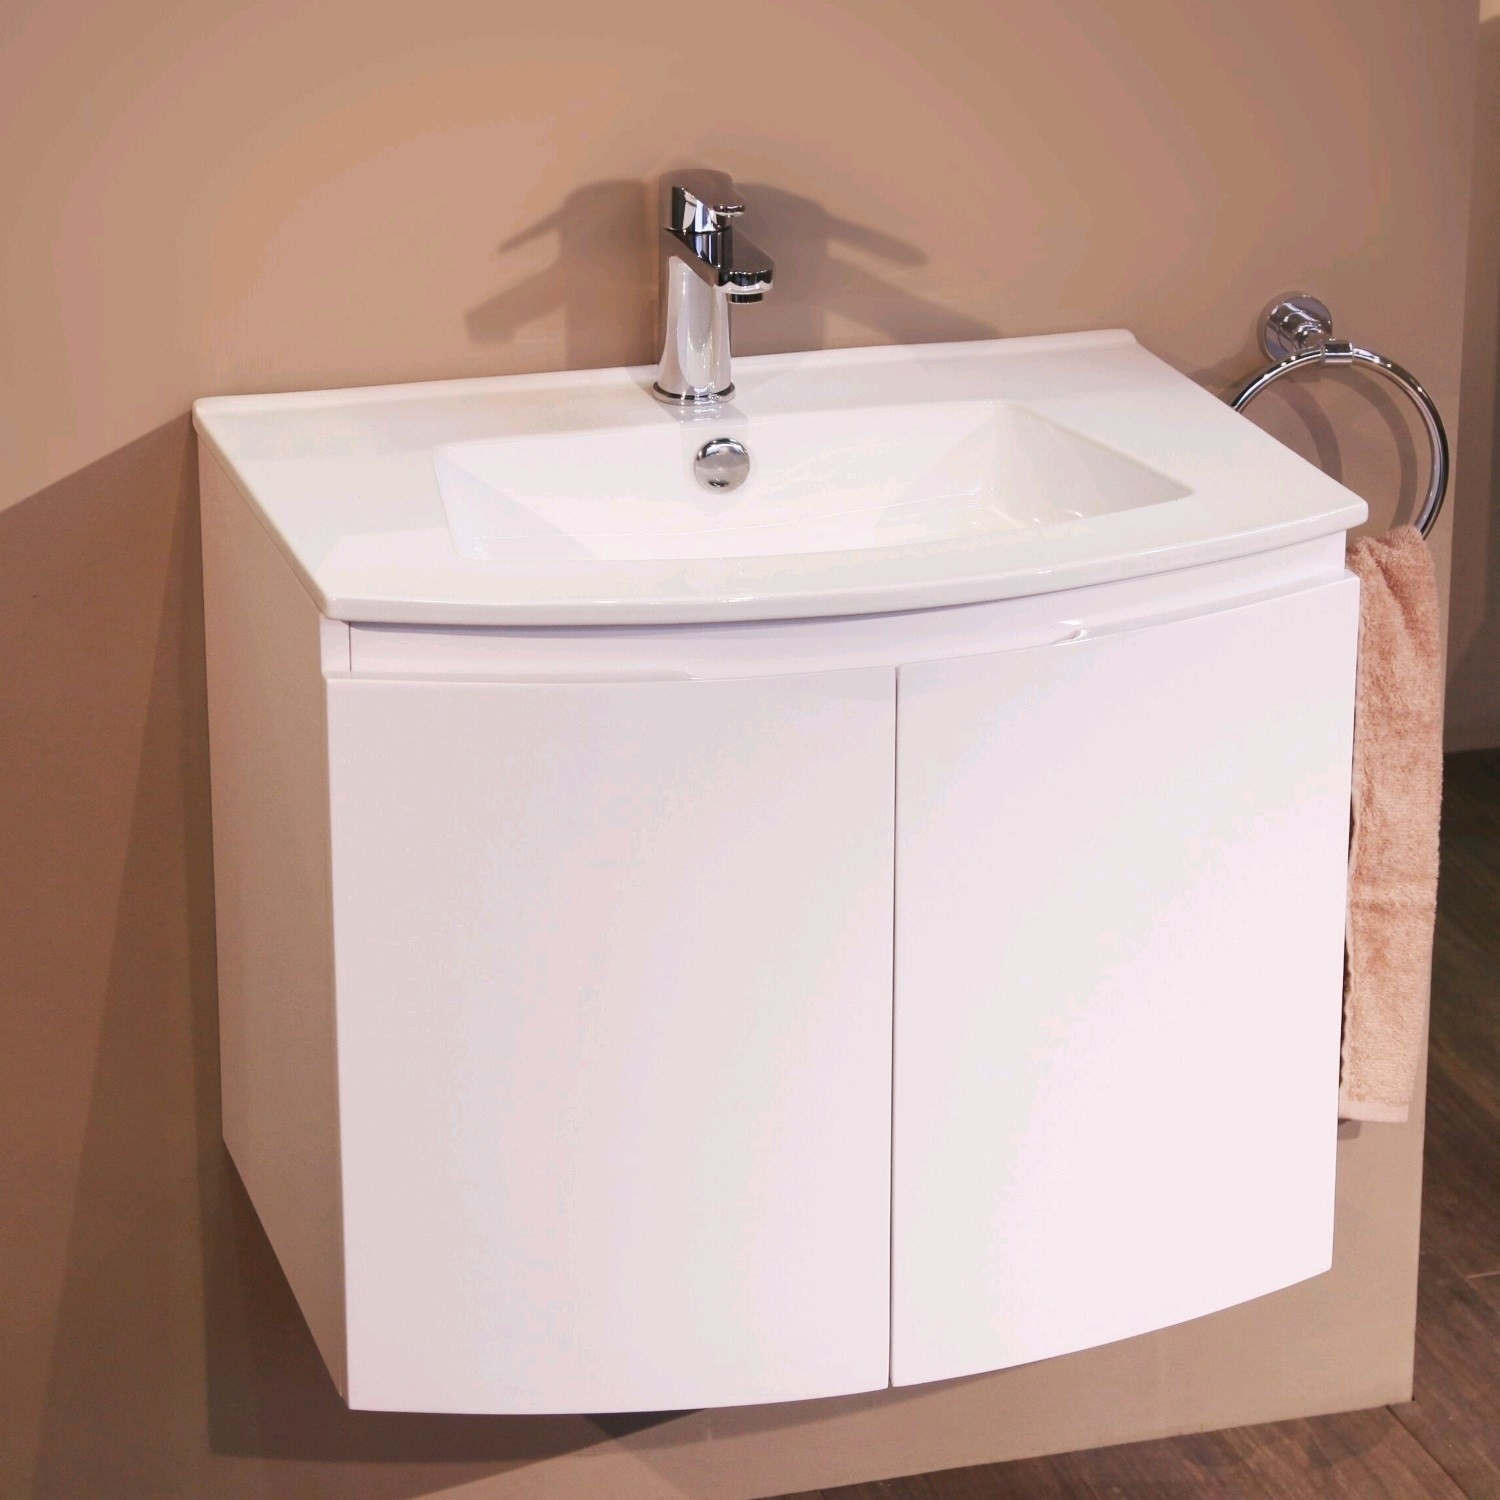 620mm Wall Hung Basin Vanity Unit  White Double Door  Voss Range